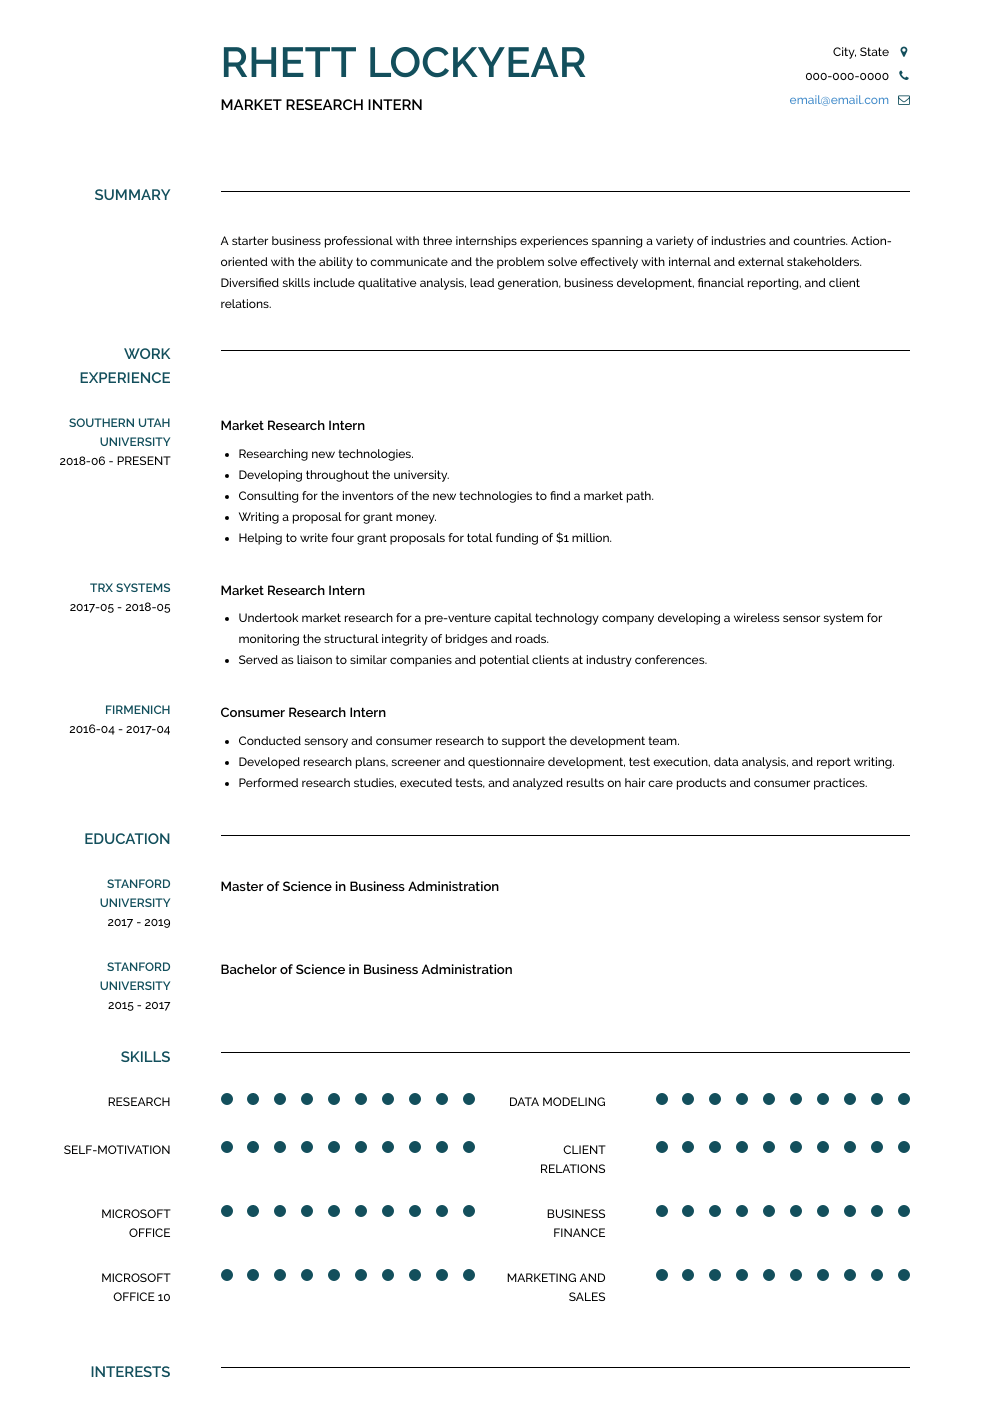 Market Research Intern Resume Sample and Template